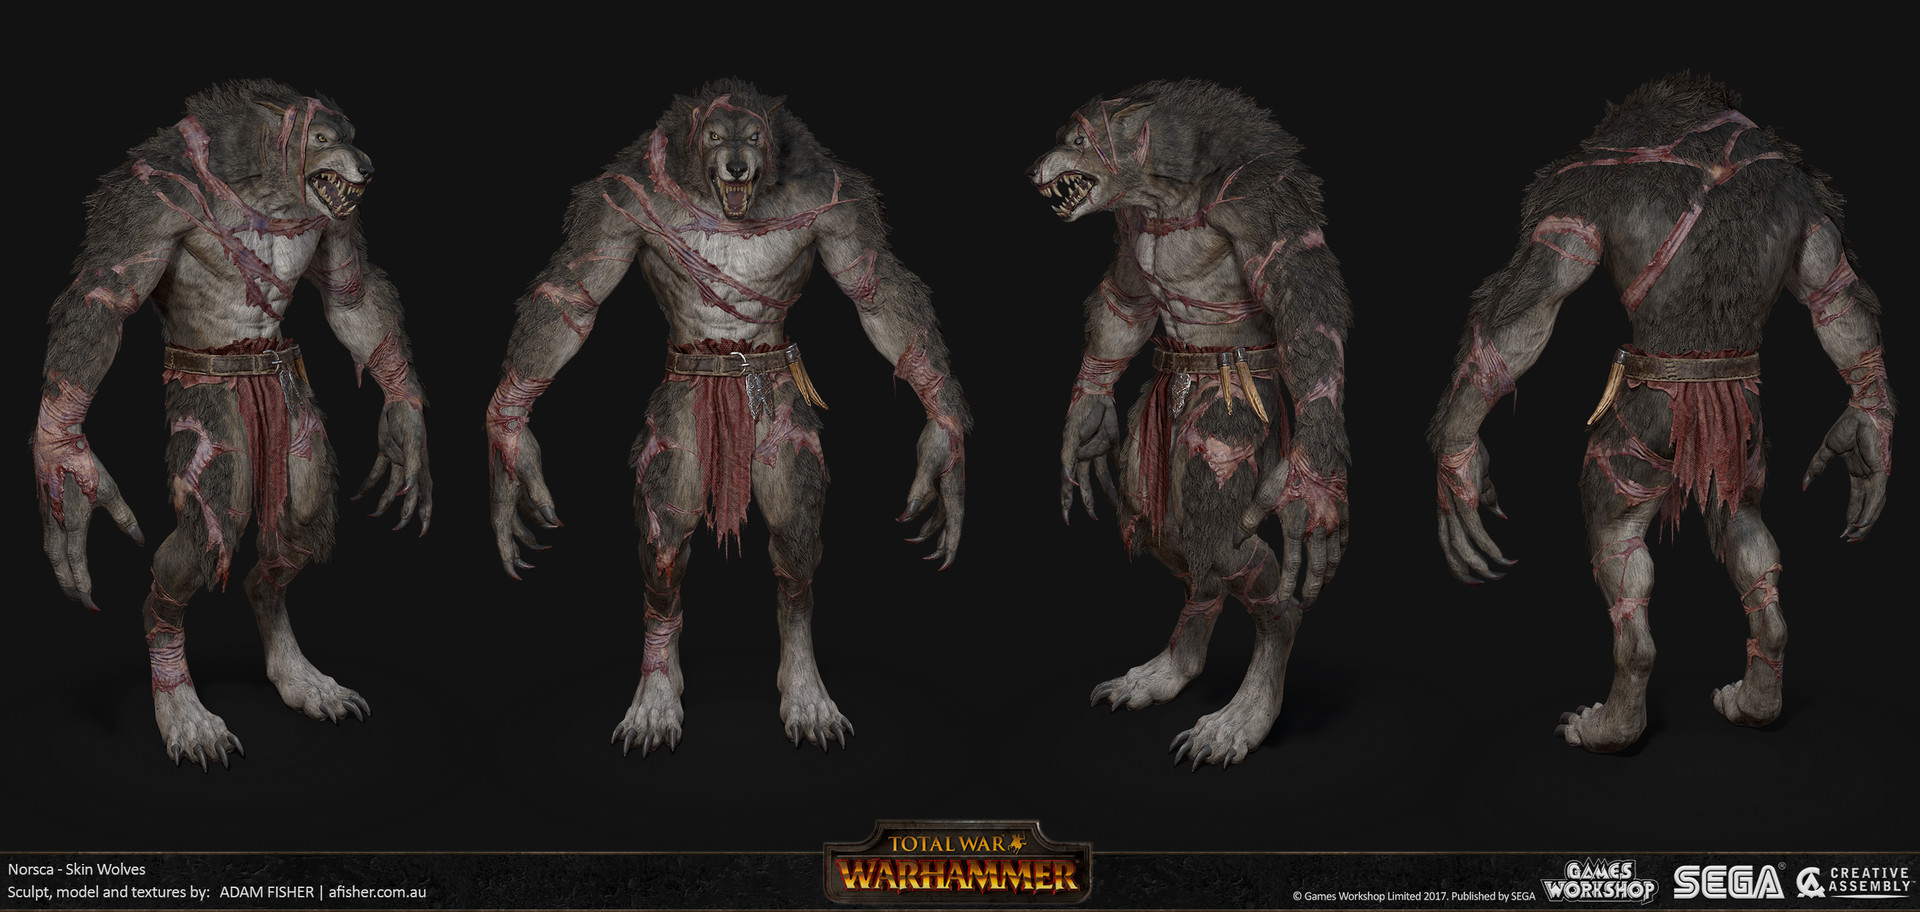 Adam fisher afisher norsca skin wolves01